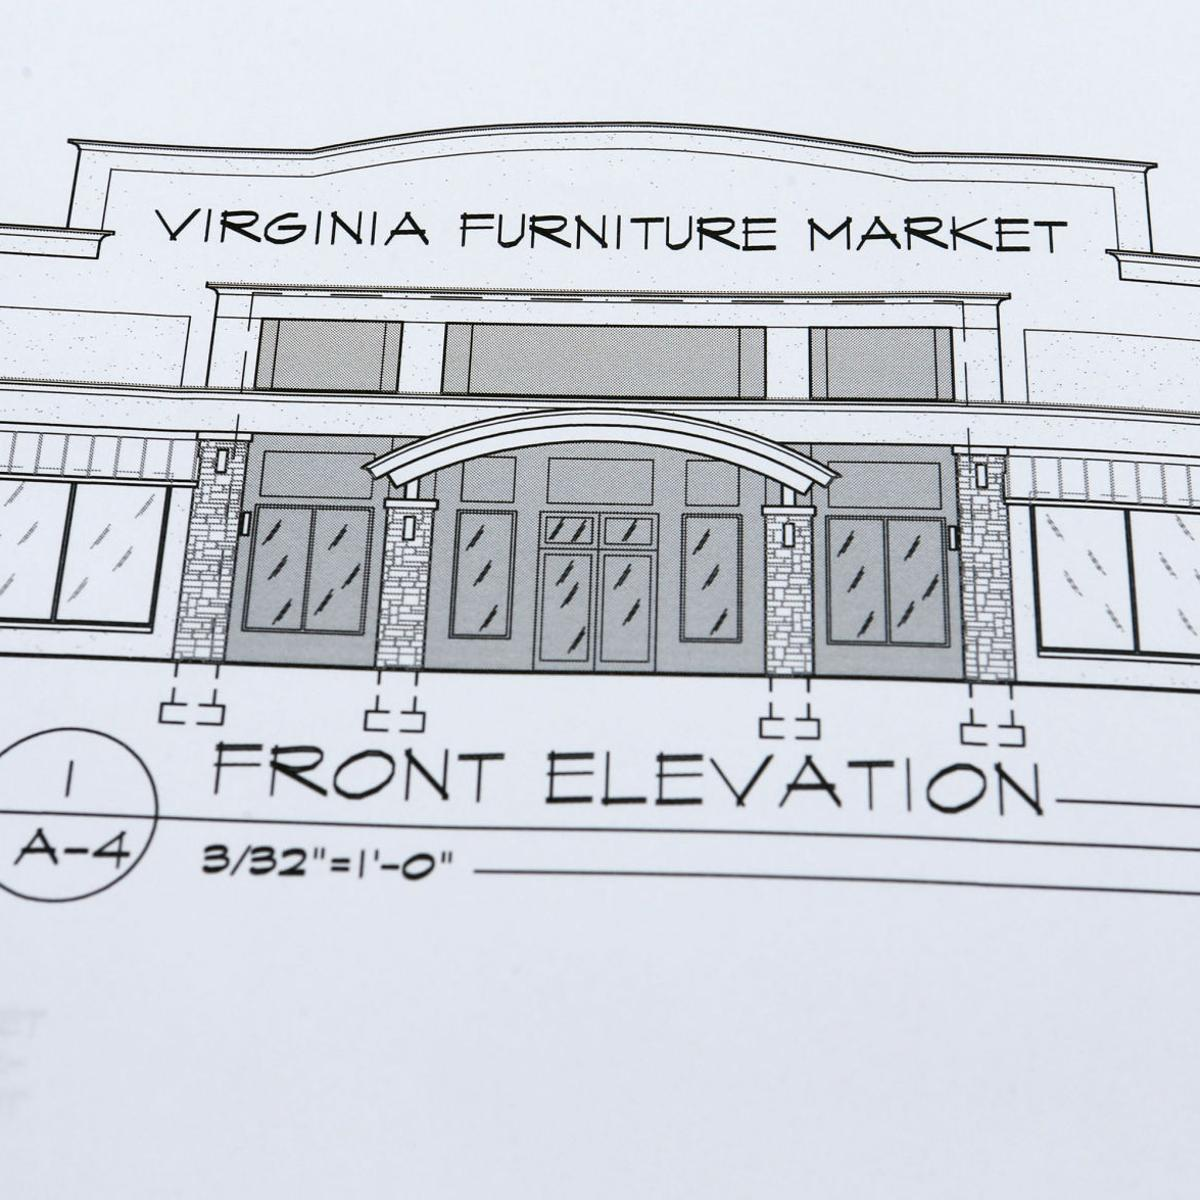 Virginia Furniture Market Plans Biggest Store Yet In Christiansburg